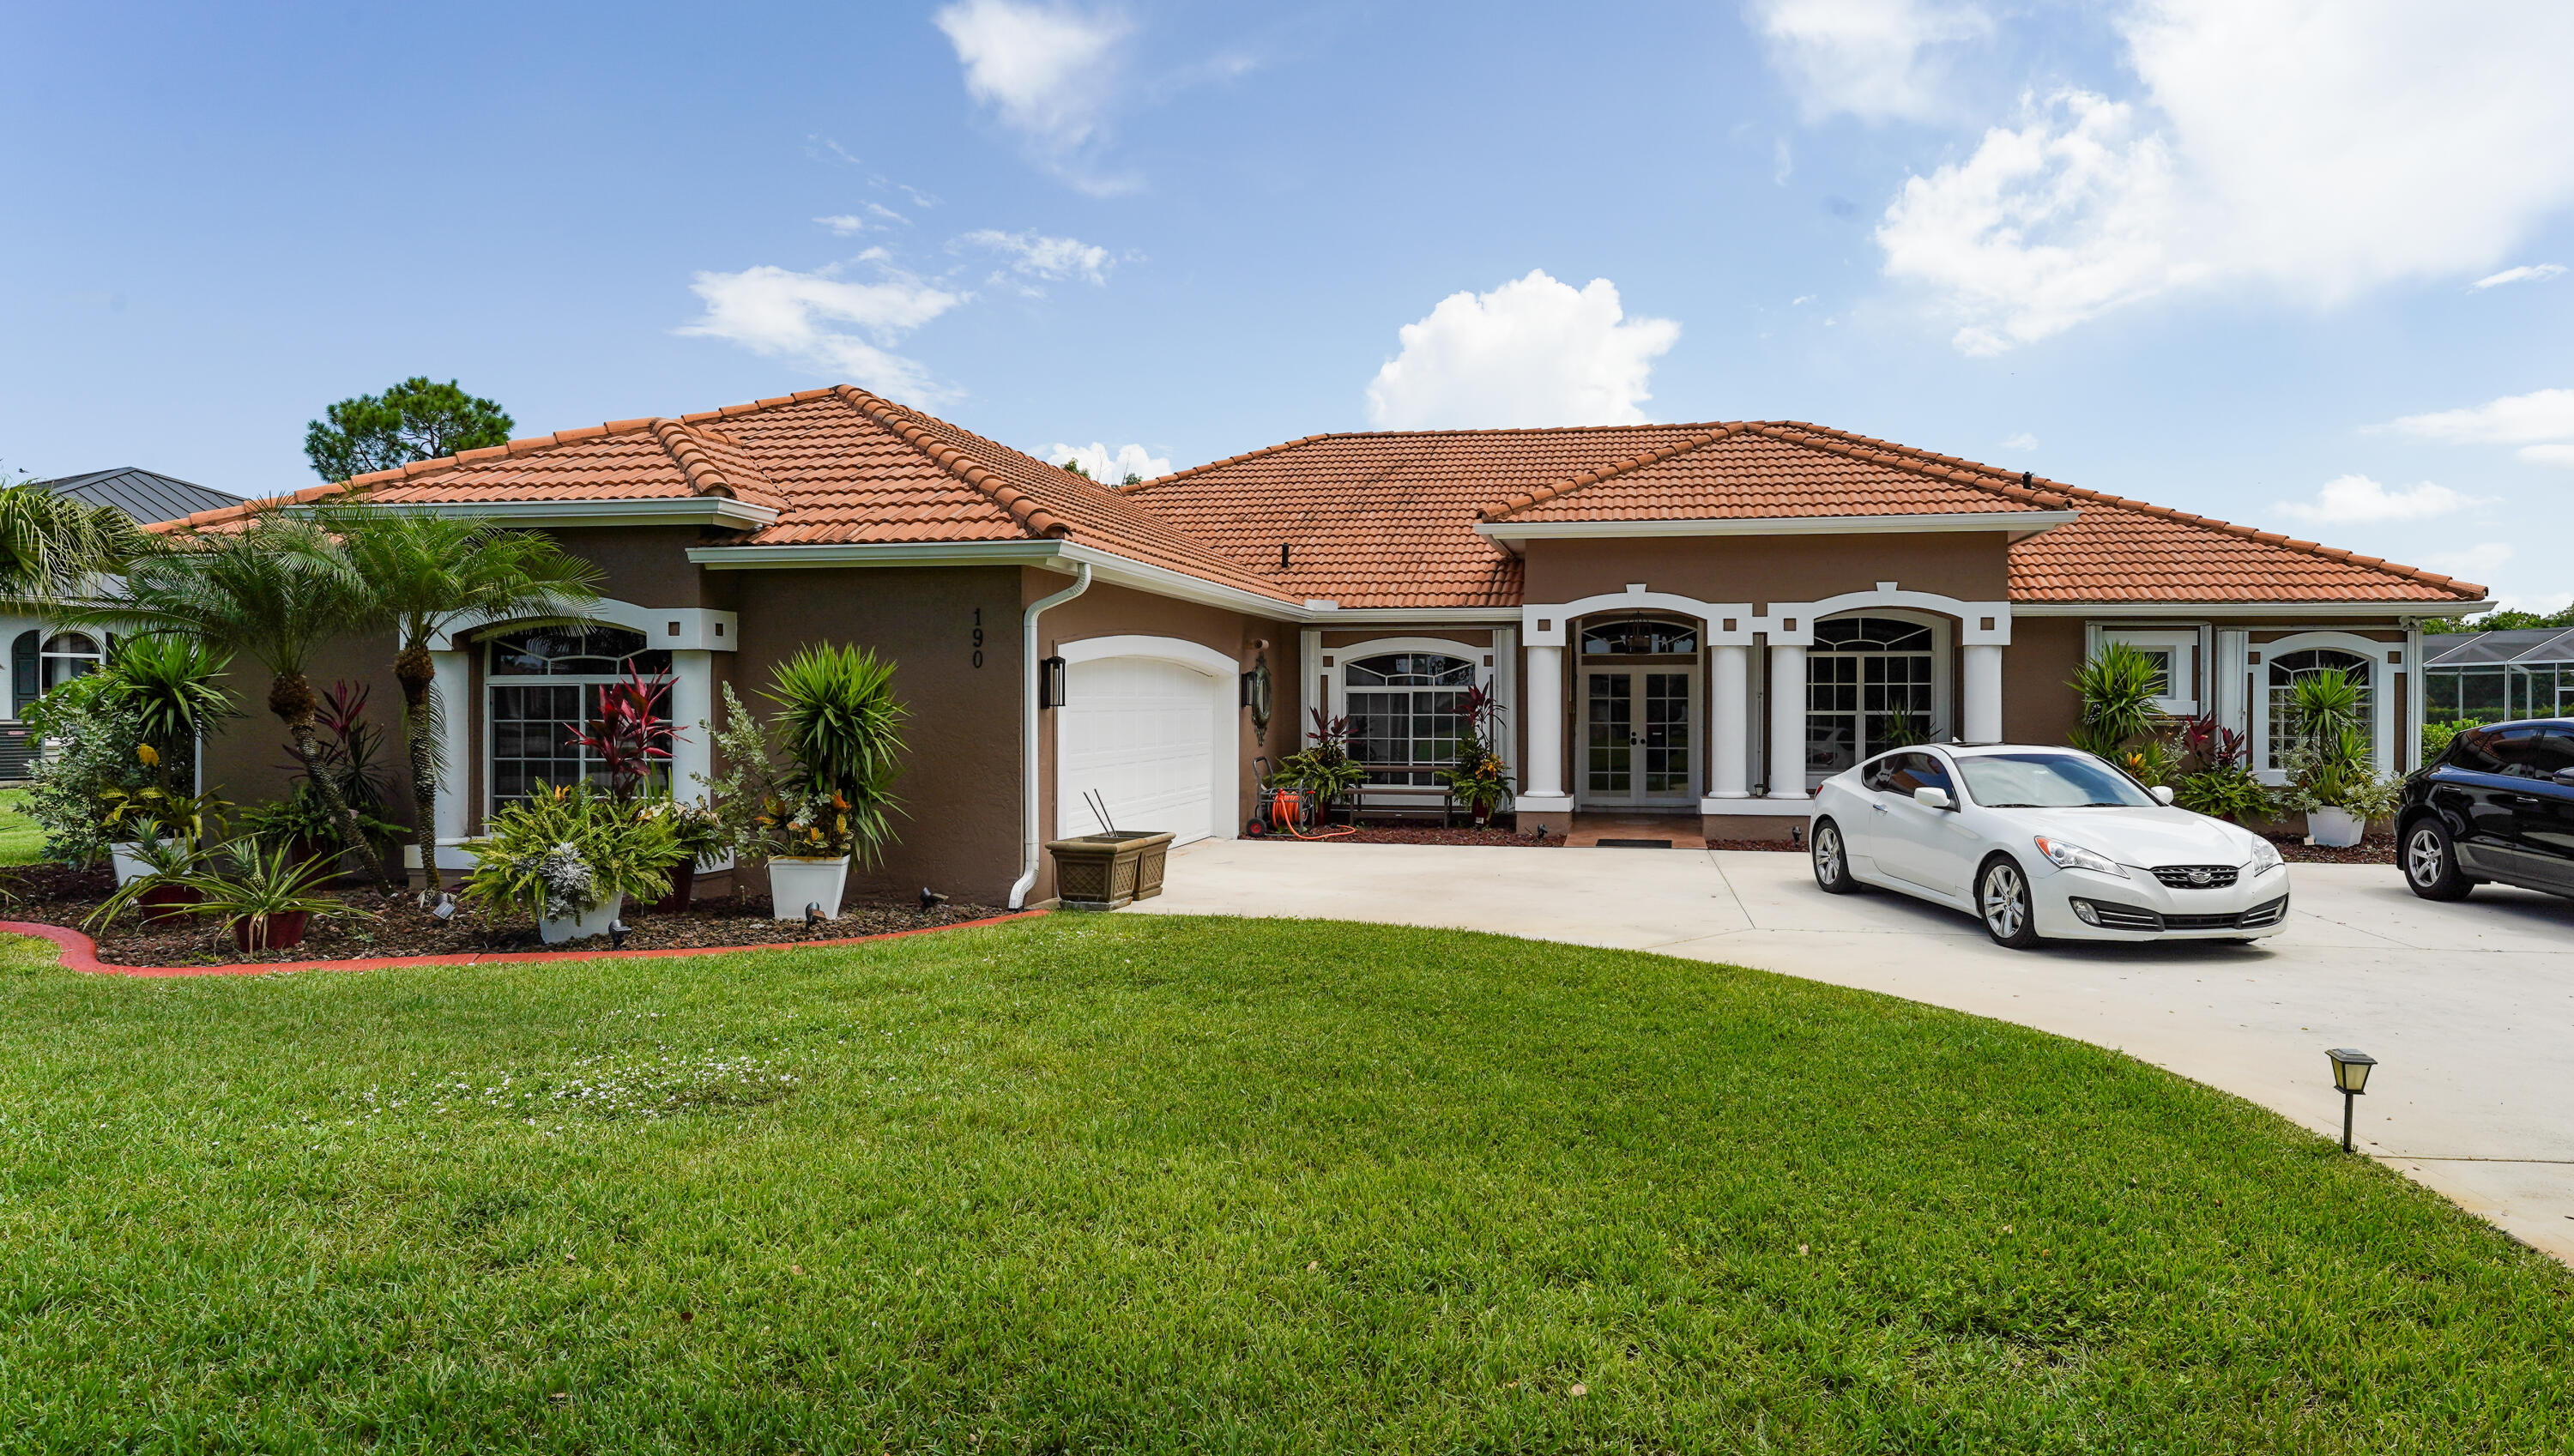 WOW! Custom 4 bedroom/3 bath POOL Home located in the private community of Osprey Ridge. Home sits on .71 acres which backs up to a preserve. House has EVERYTHING: Italian Porcelain tile, tray ceilings, Magnificent 4 pocket sliders that open up completely to your outdoor paradise. Enjoy your heated pool with a jacuzzi and water fall. Kitchen boasts granite counter tops, new tile backsplash 2 custom pantries and so much more.Double front door has electric shutters rest of the house has accordion shutters along with a whole house 30K back-up generator.500 gallon Propane gas runs generator, stoveand tankless hot water heater.Too many upgrades to list.  MUST SEE! Florida living at it's best. Don't wait to see and call this house your NEW HOME!